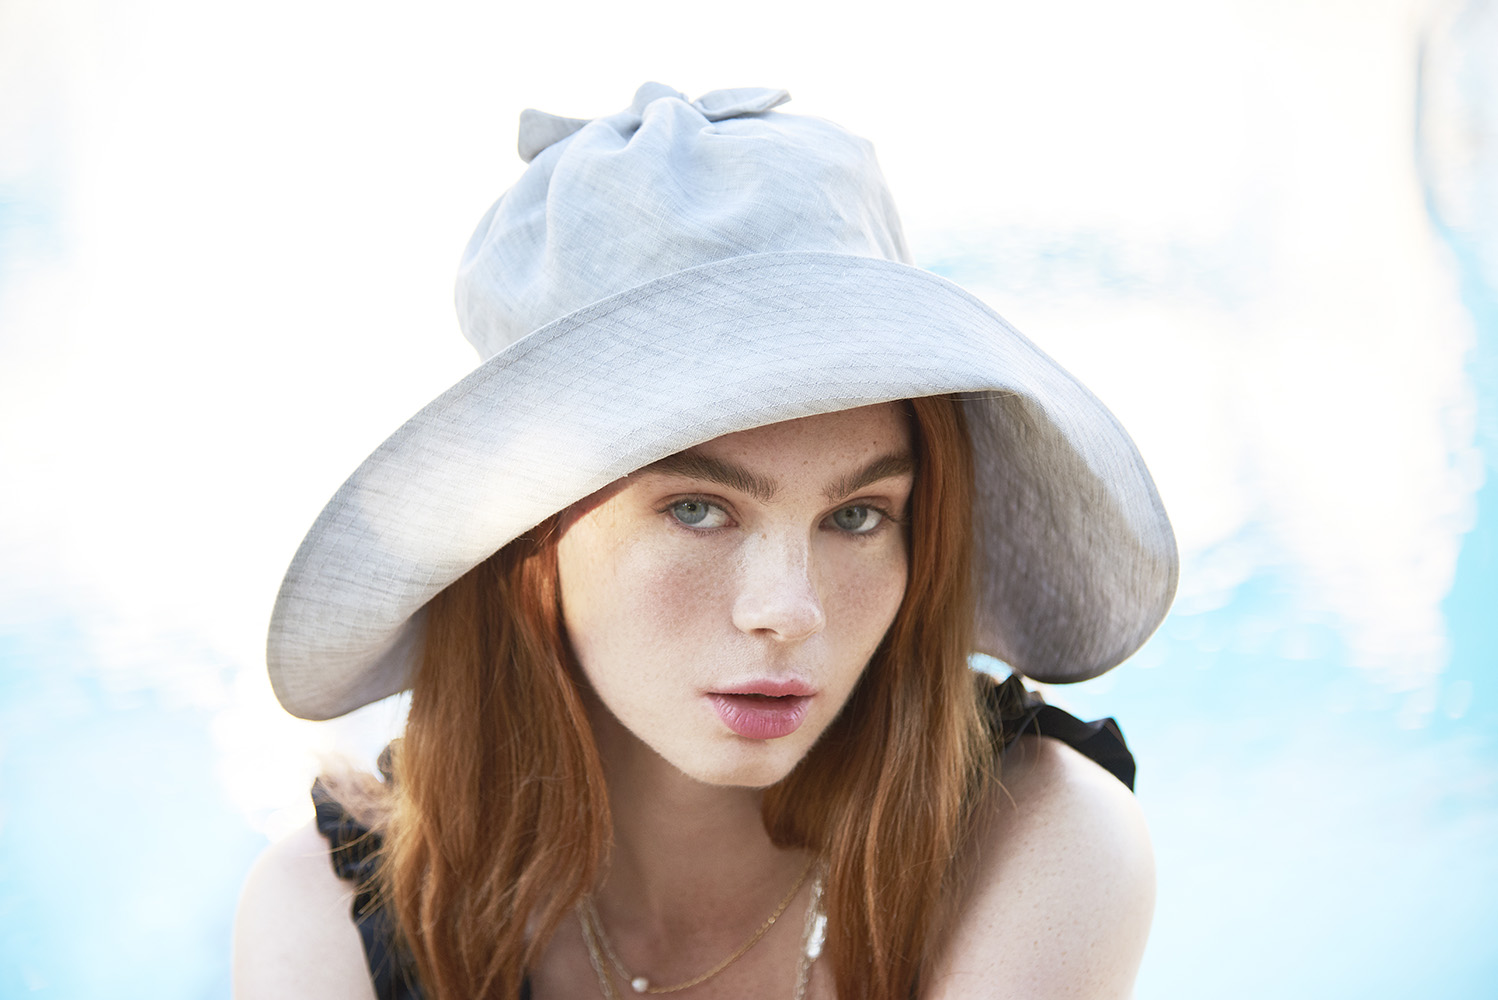 Hats for Men & Women - designed and made in London, sold online since 2009